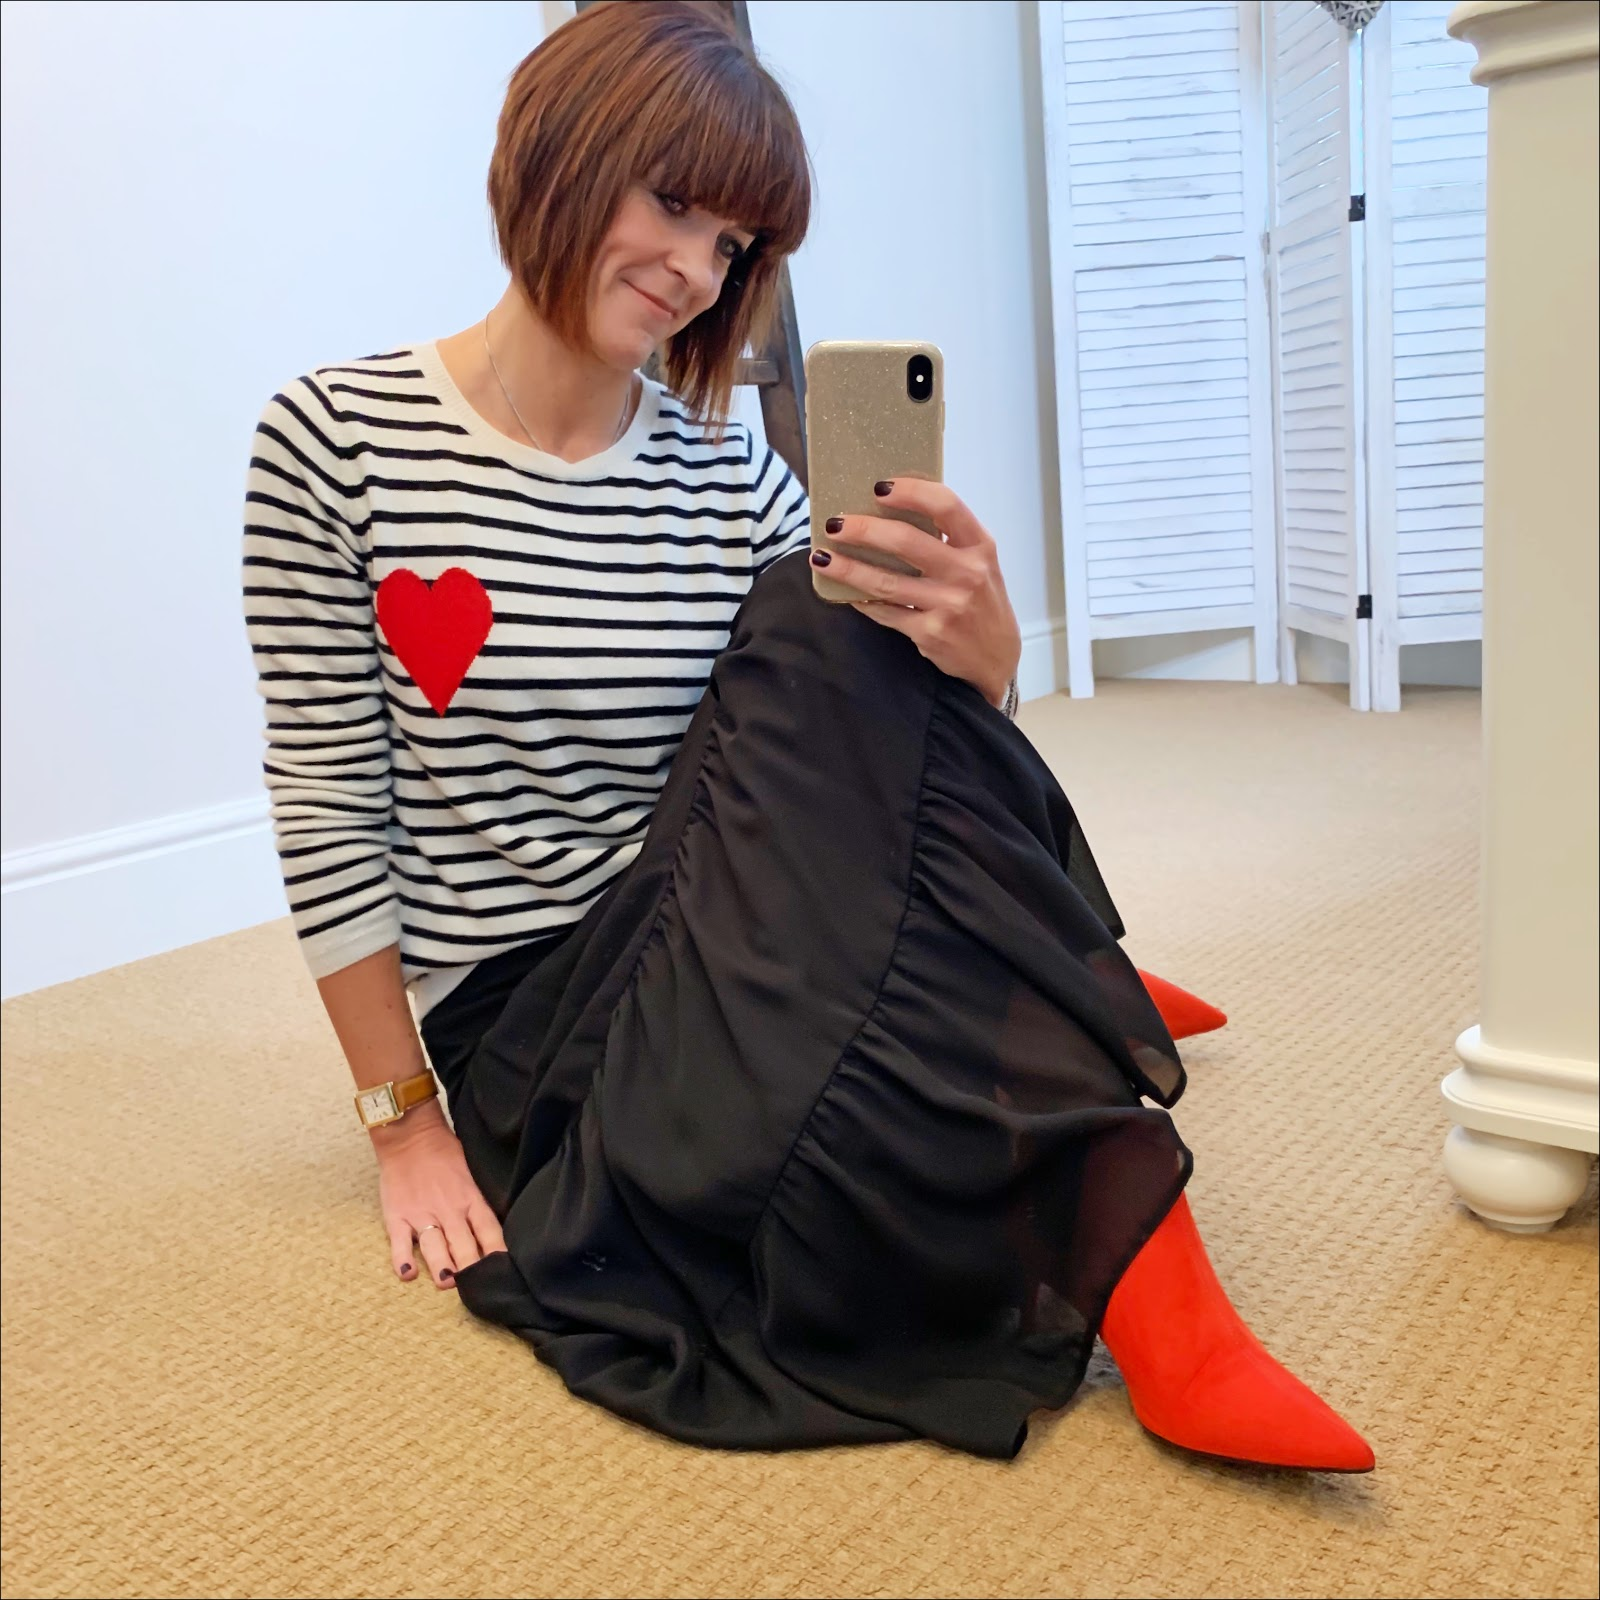 my midlife fashion, chinti and parker stripe cashmere jumper with heart, marks and spencer tiered maxi skirt, marks and spencer red kitten heel ankle boots